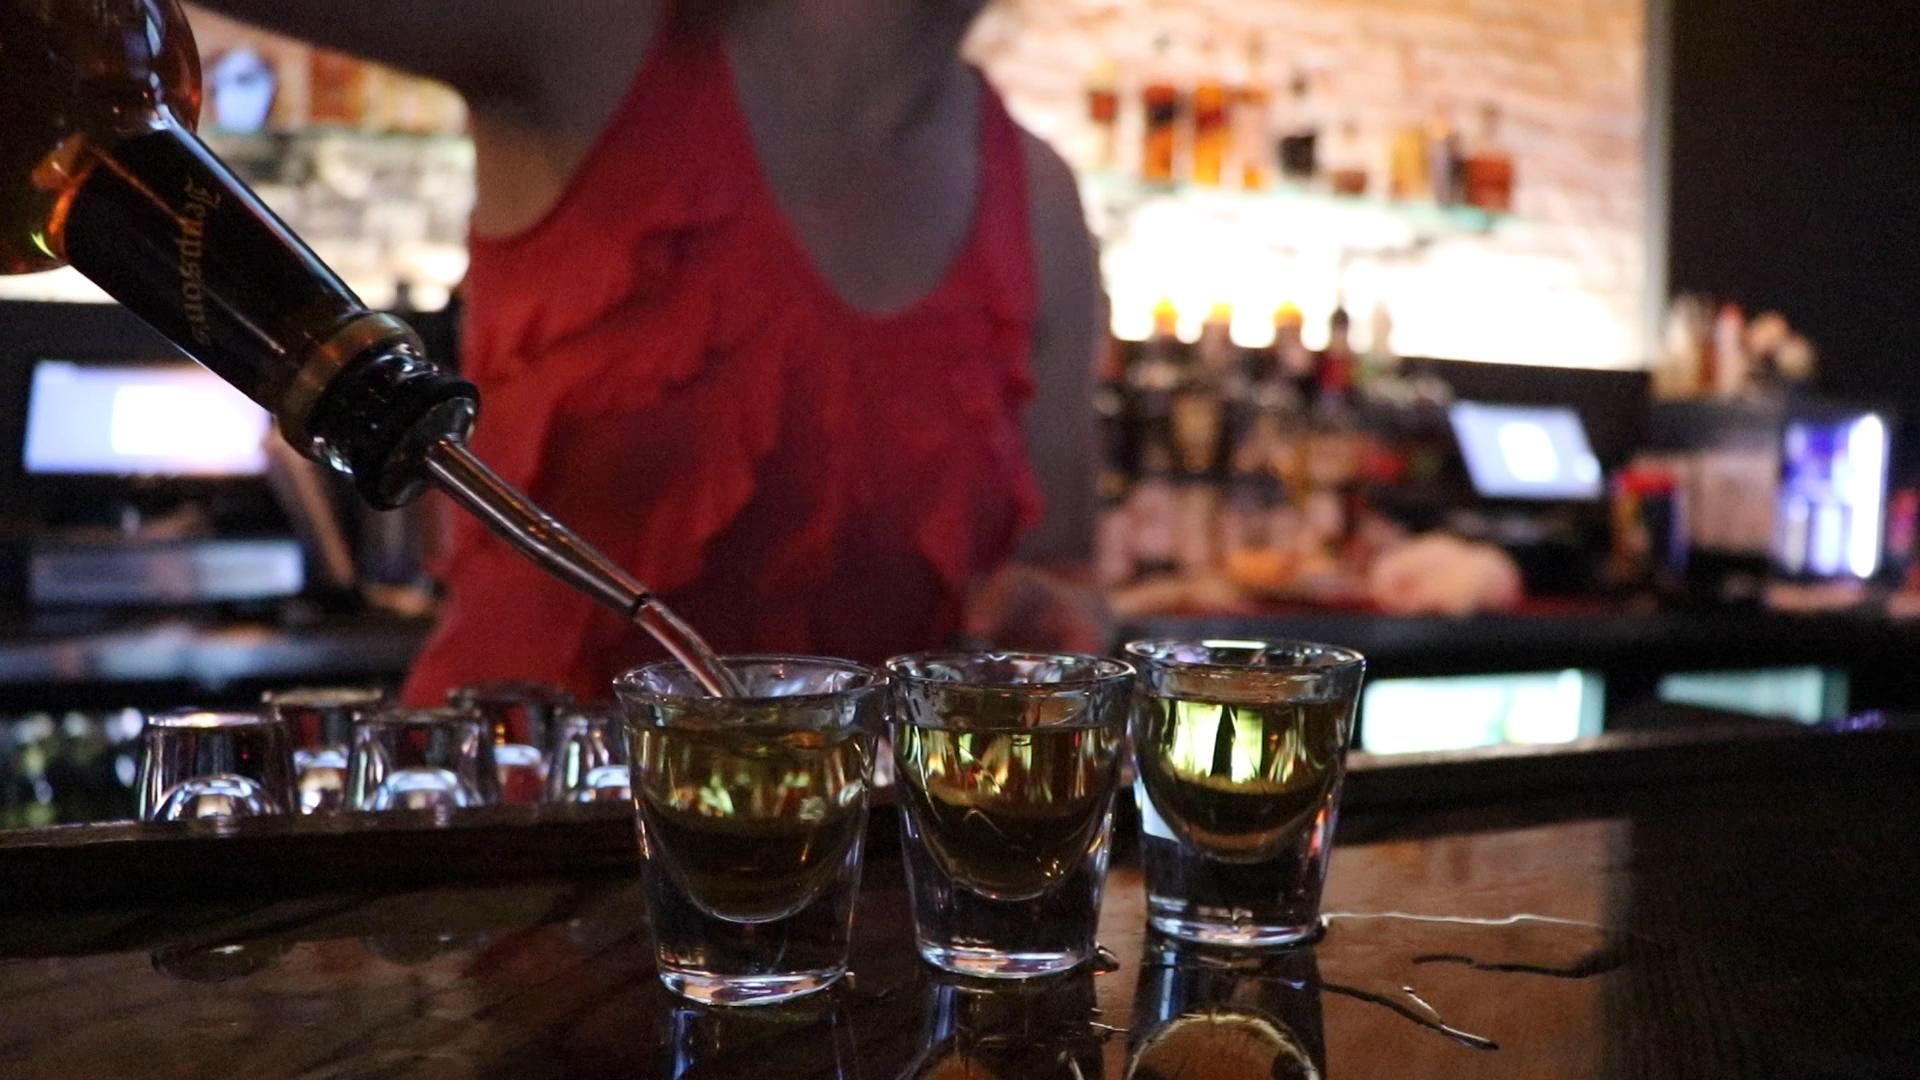 Legend has it that Malort's inventor Carl Jeppson enjoyed the drink because its strong taste was still picked up by his taste buds, damaged from years of excessive smoking. (Evan Garcia / WTTW News)